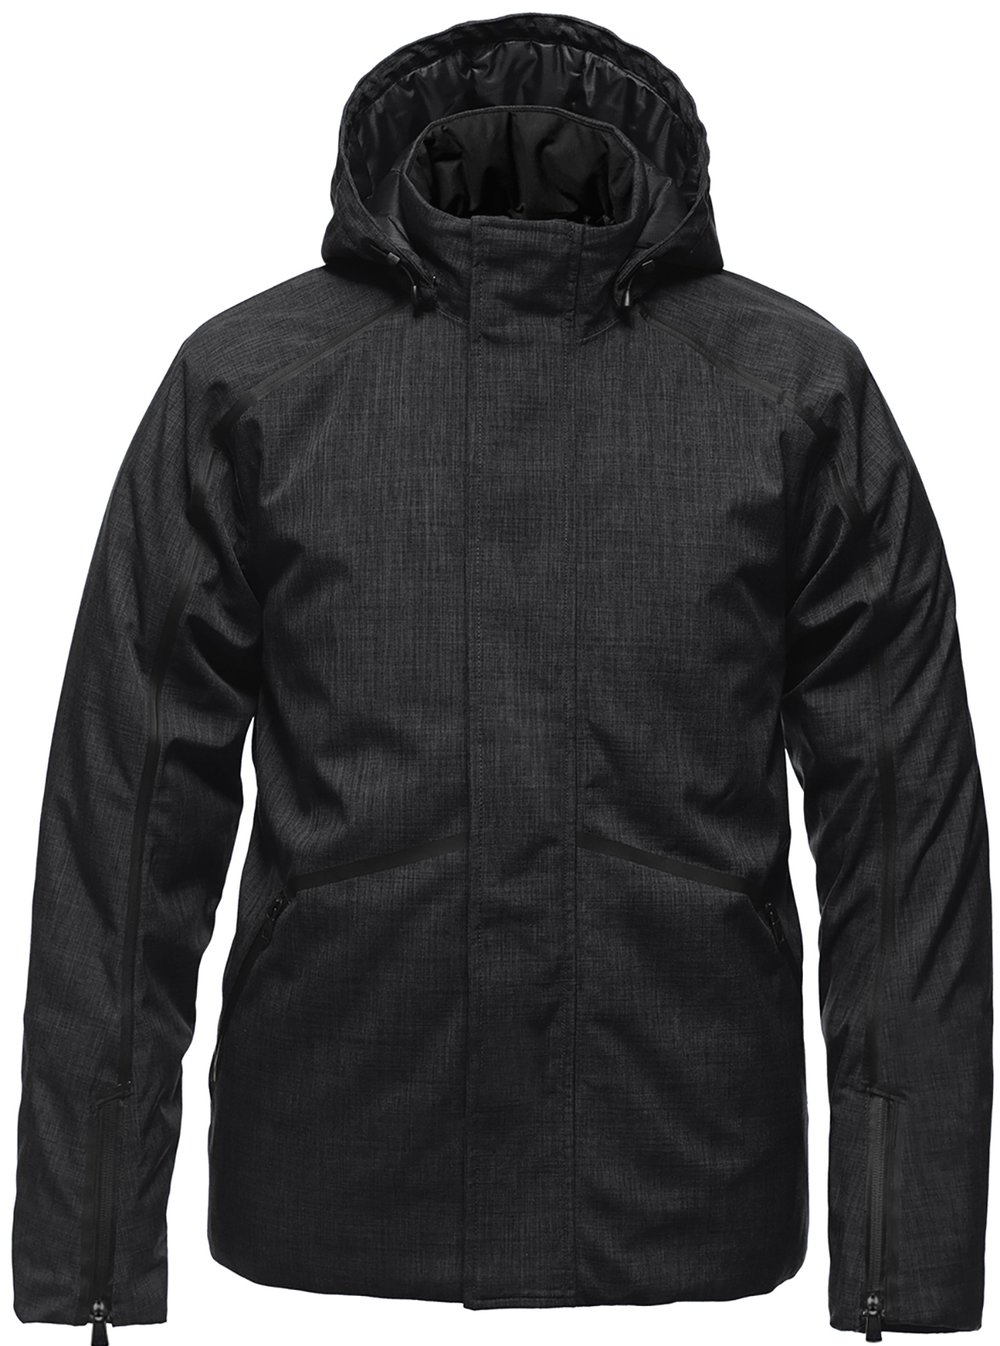 Aether Passage Jacket, $625